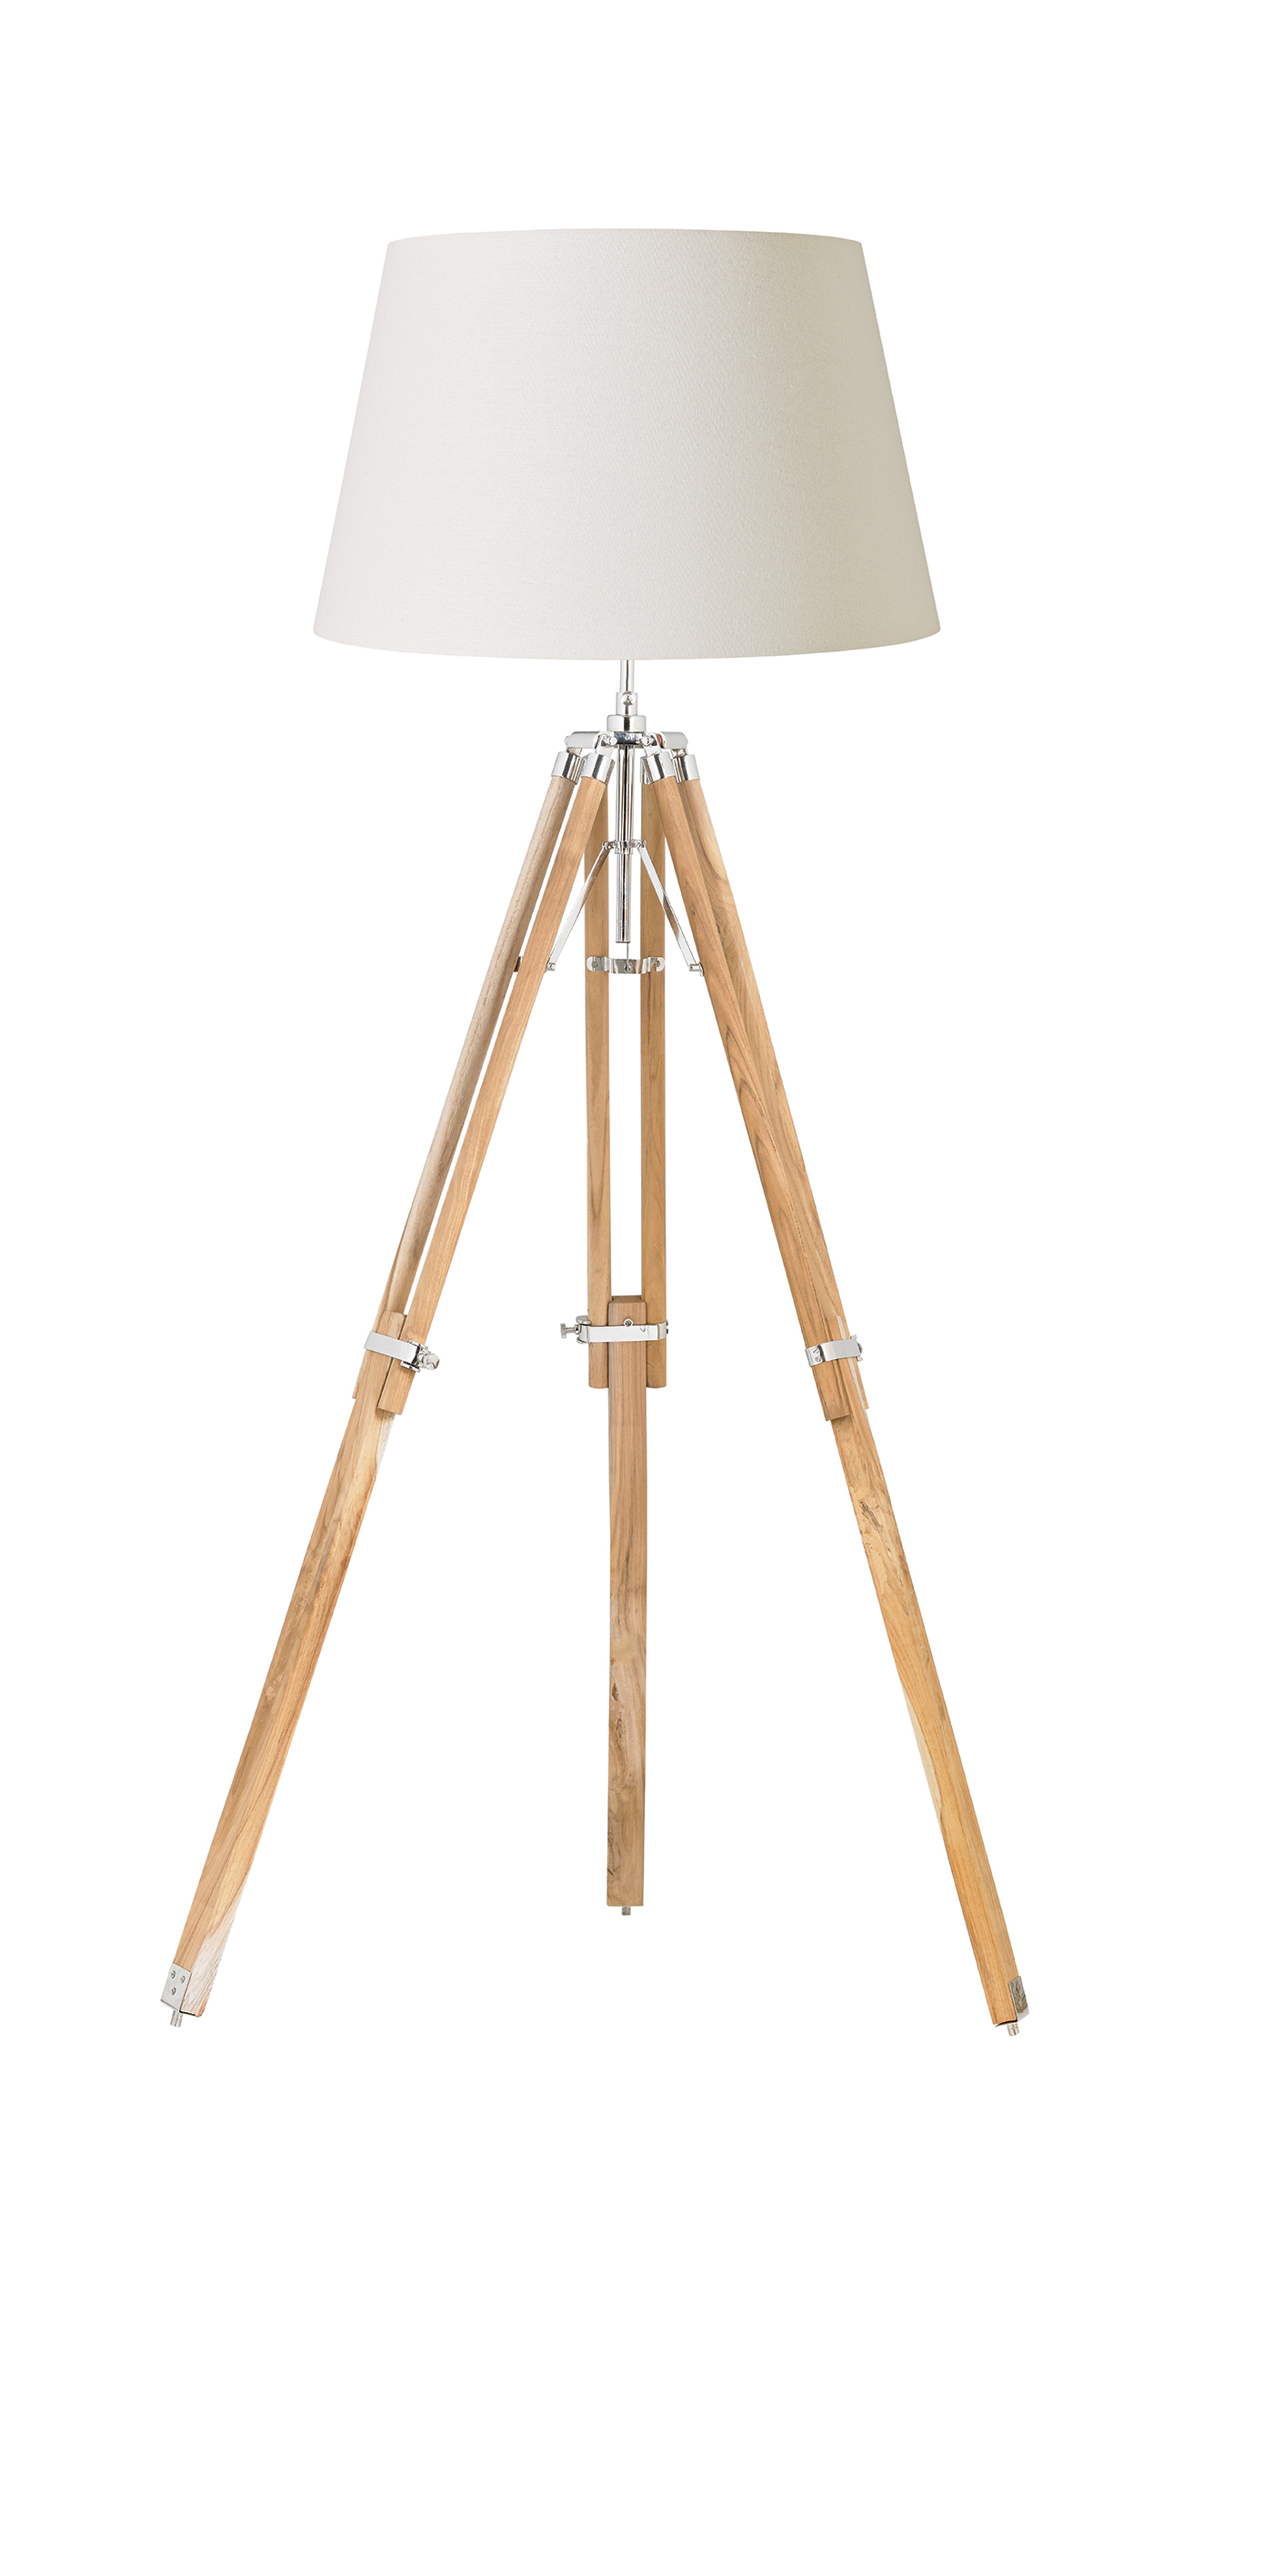 Endon tripod base only floor lamp 60w teak wood bright for Tripod spotlight floor lamp in teak wood